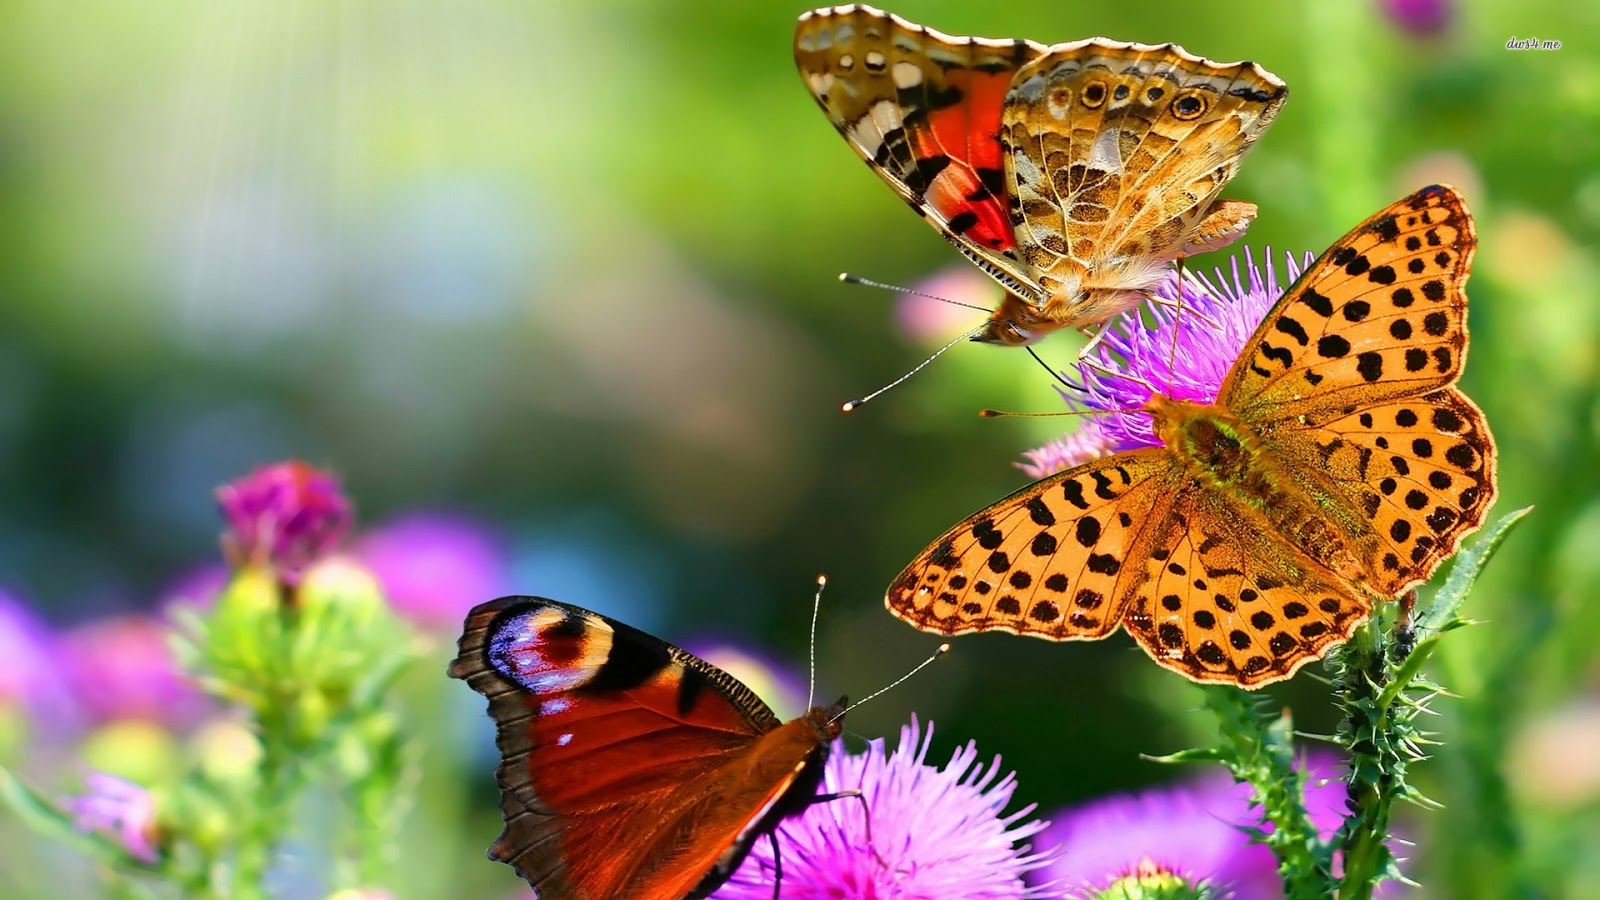 Butterfly Hd Wallpapers Download For Android Download 1600x900